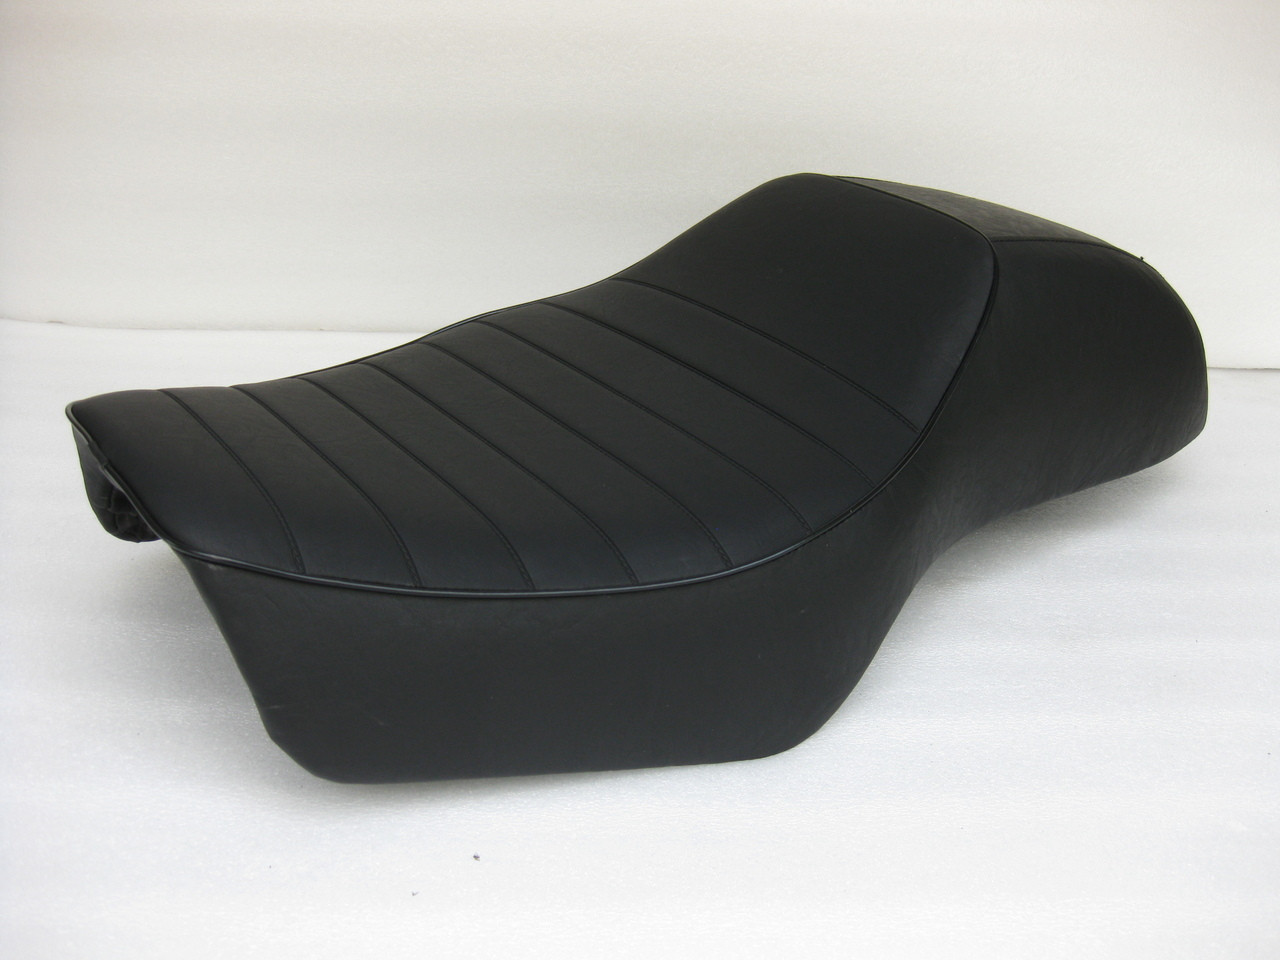 Honda GL1200 Goldwing Cafe Racer Complete Motorcycle Seat with metal seat pan #4319